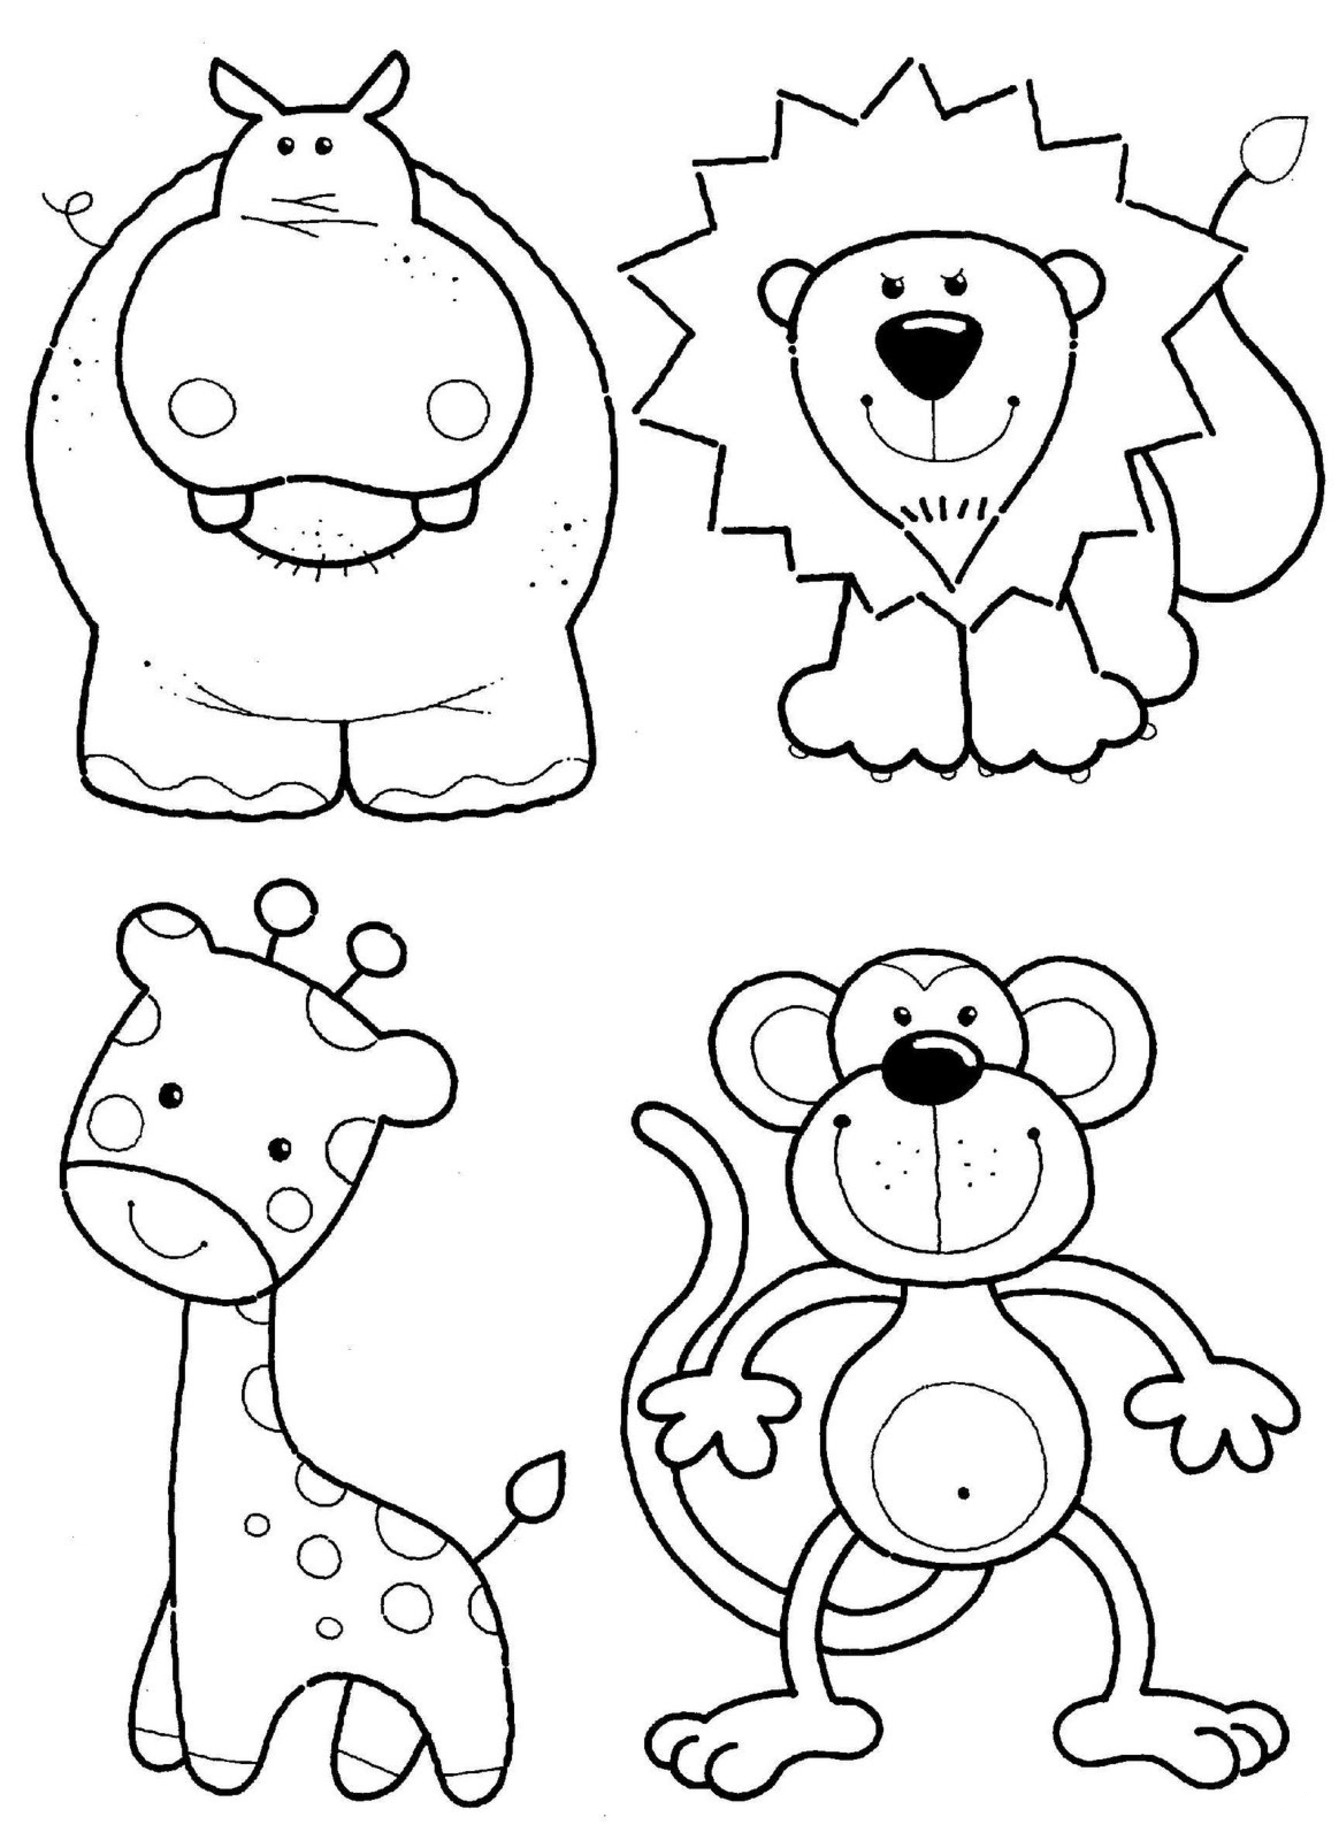 cute coloring sheets wild animal coloring pages best coloring pages for kids cute sheets coloring